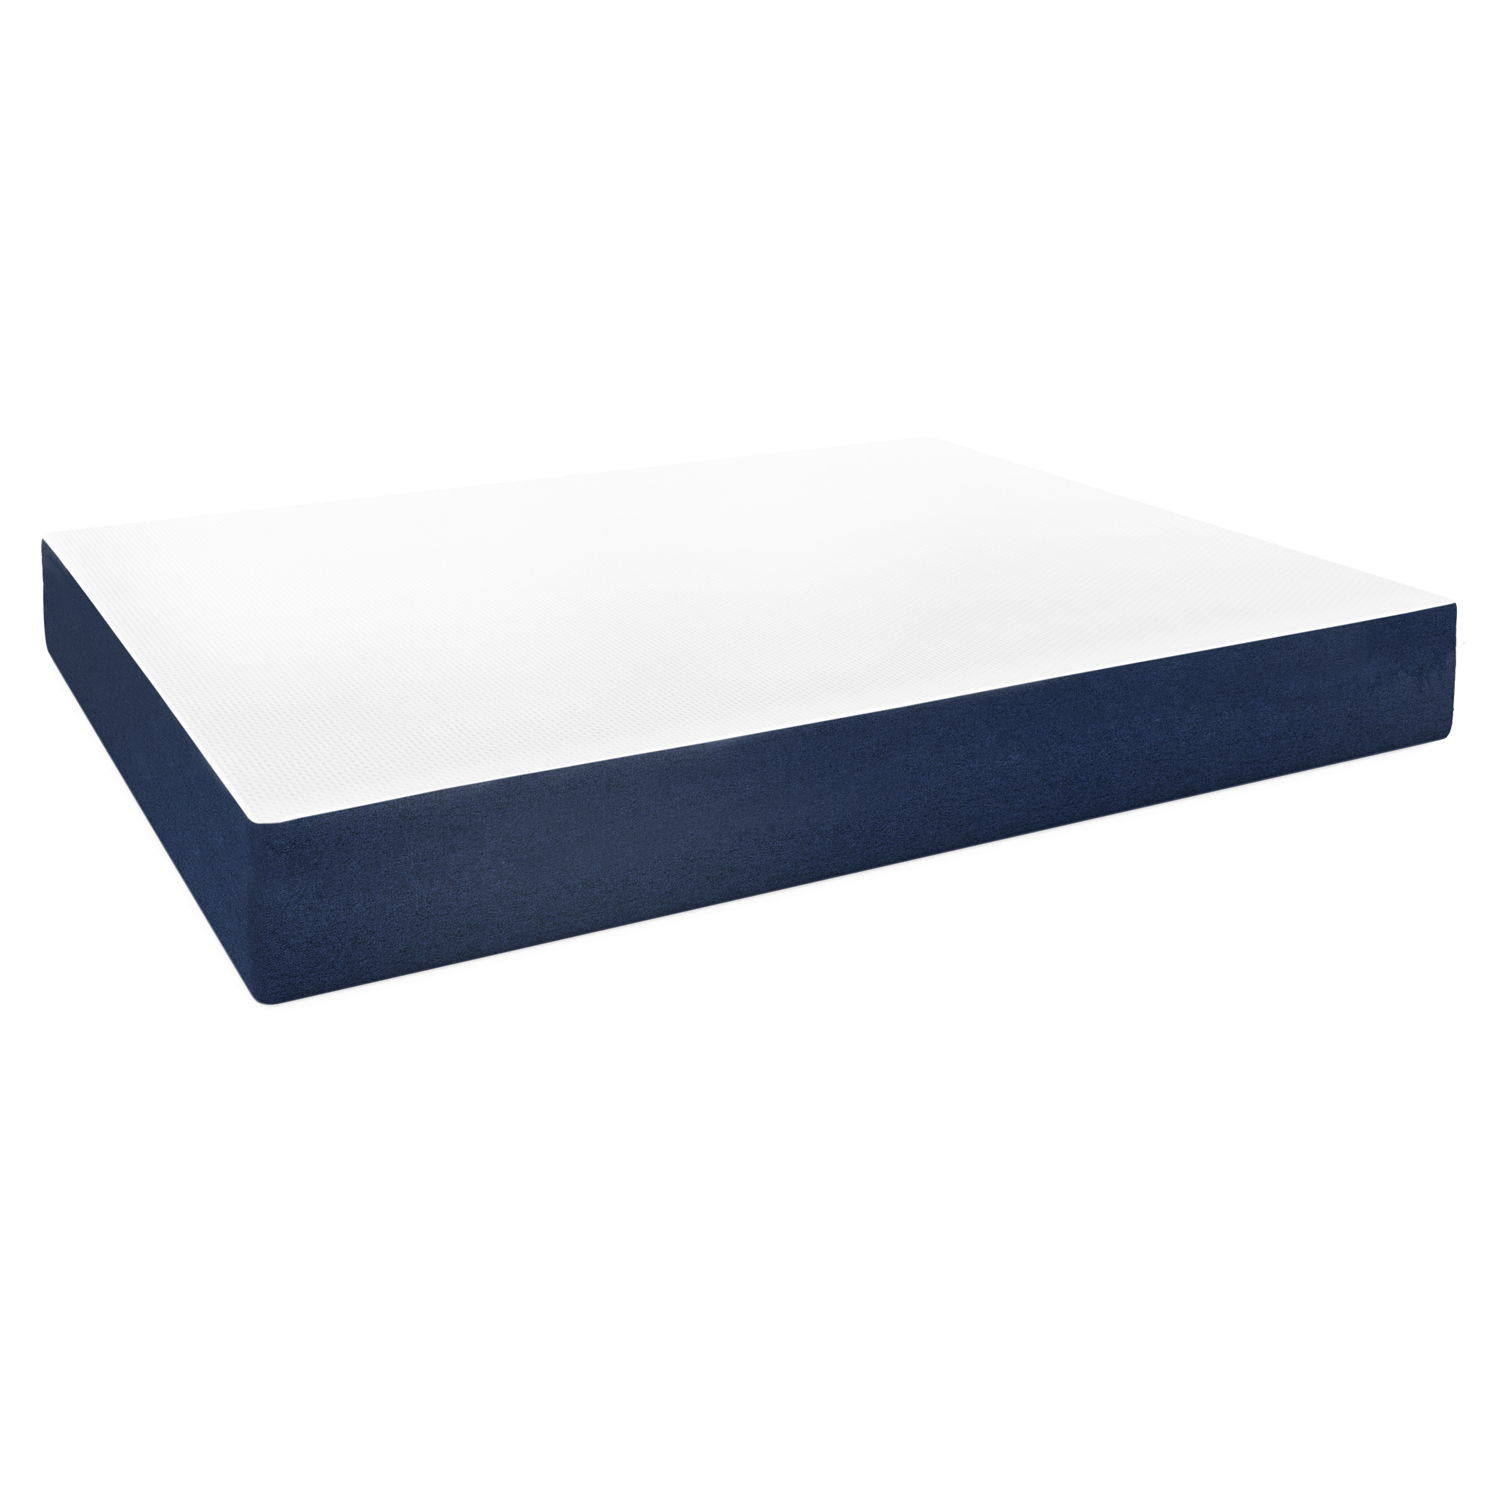 SIDE VIEW PROFILE OF THE DUO MATTRESS B Y SLEEP AWESOMENESS - PROVIDING proven relief for pressure points and adaptive support for each person.